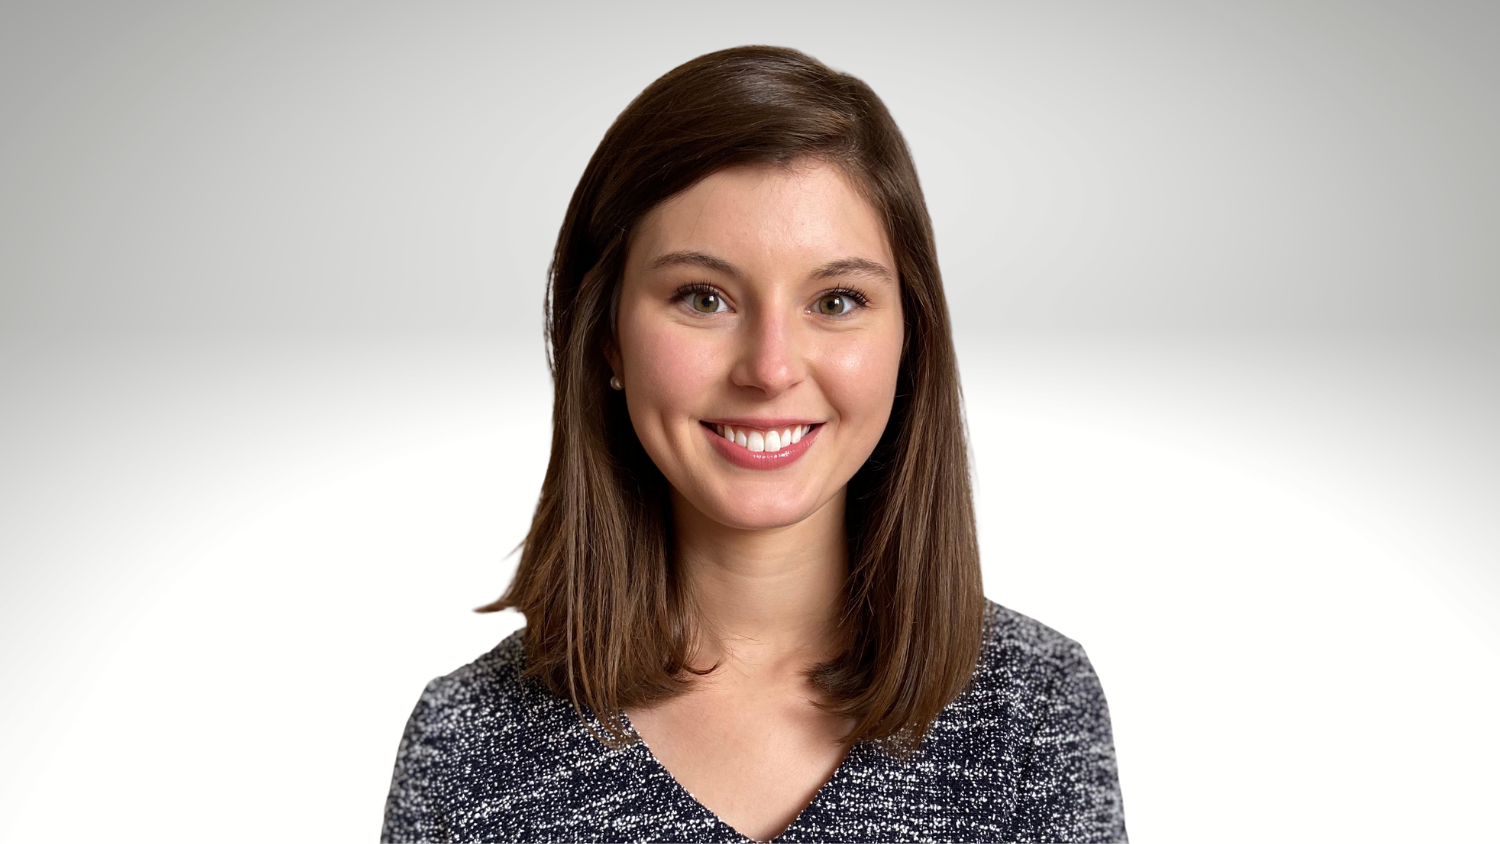 Headshot of Sarah Peterson, an N.C. State student in Accounting and Business Marketing